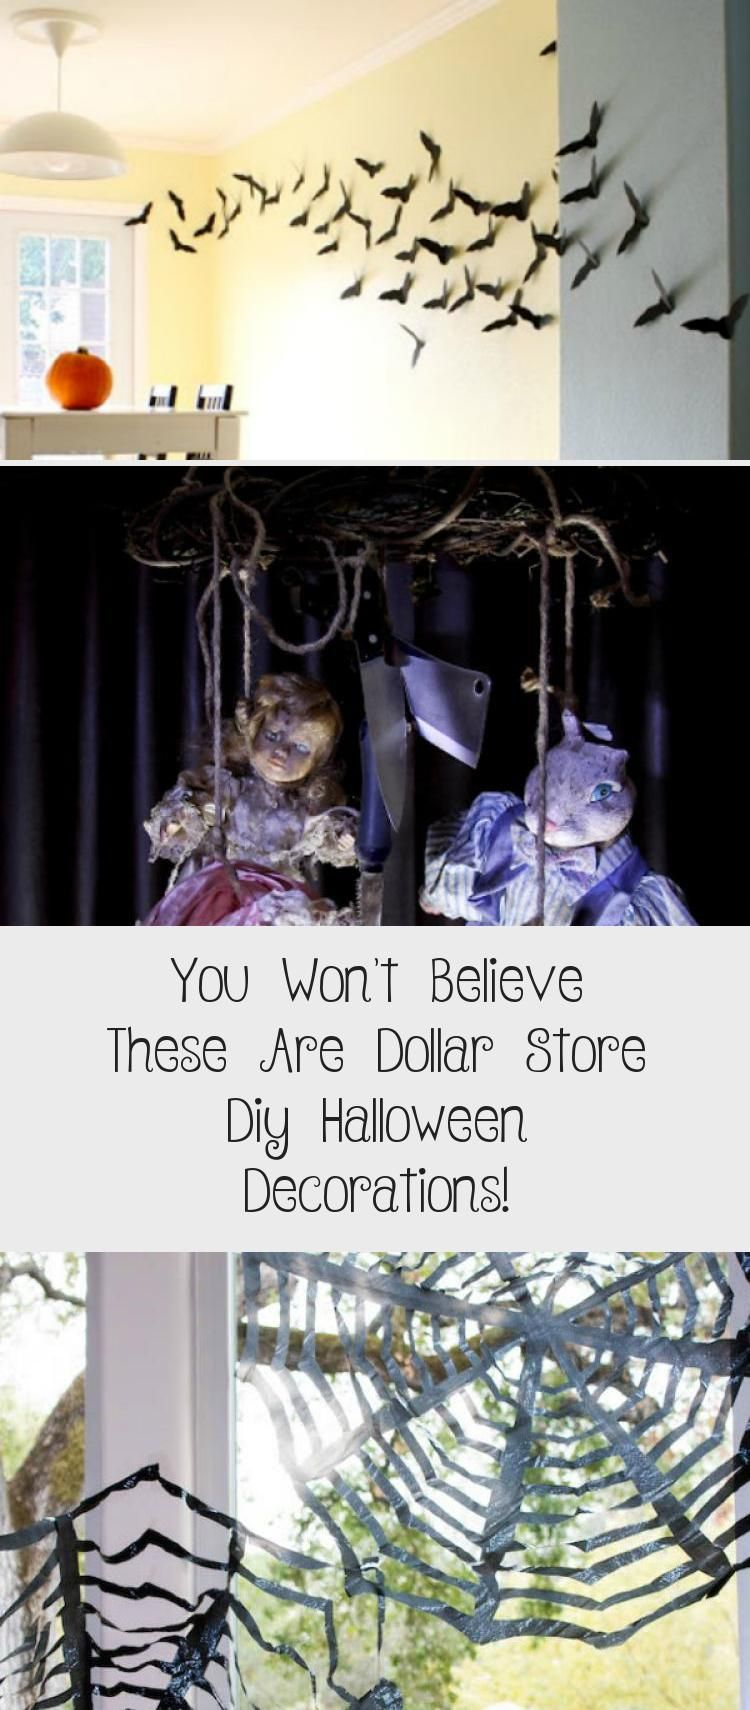 Seriously Cheap and Awesome Halloween Decorations you can make using items from the Dolalr Store. You Won't Believe these are Dollar Shop Halloween Decorations!   #halloween #halloweendecorations #diyhalloweendecorations #halloweendecorationsHouse #HomeMadehalloweendecorations #halloweendecorationsYard #halloweendecorationsSkeleton #halloweendecorationsCitrouille